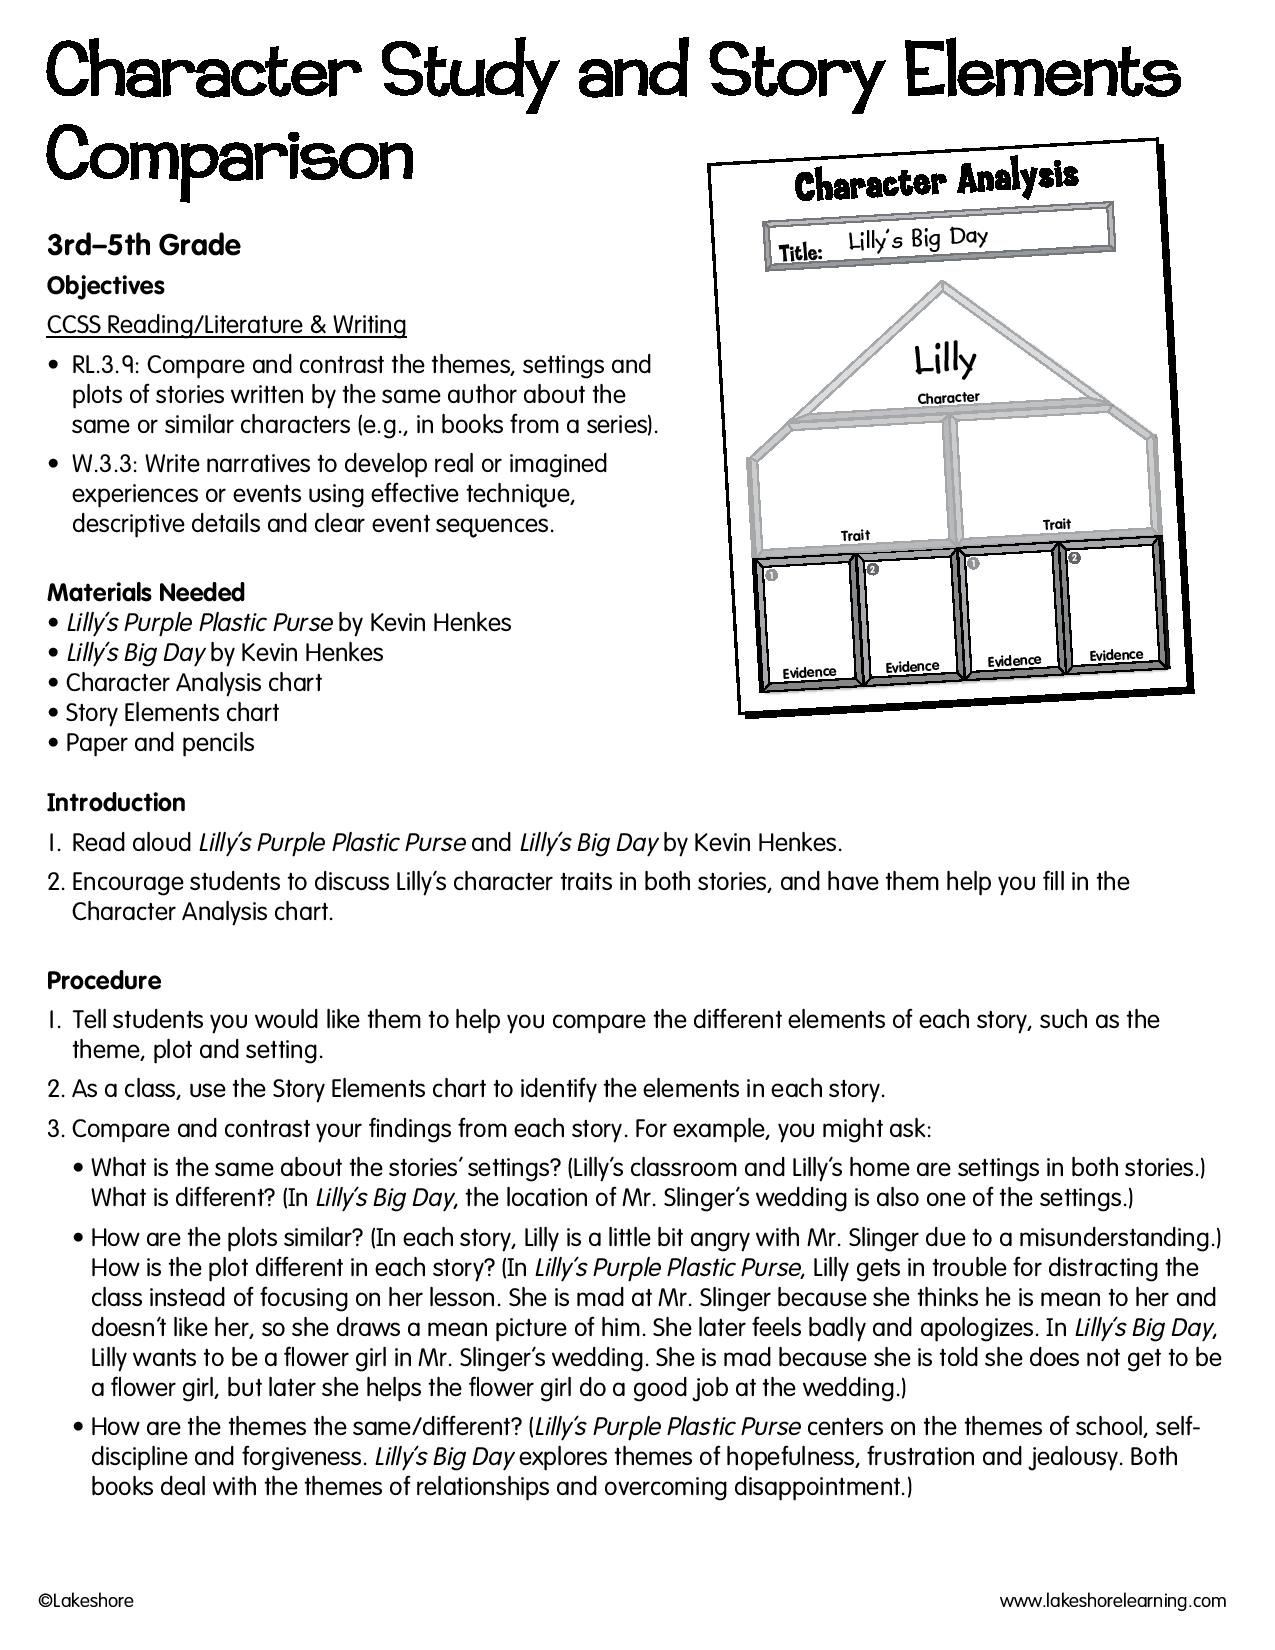 Story Elements Worksheet 5th Grade Character Study and Story Elements Parison Lessonplan